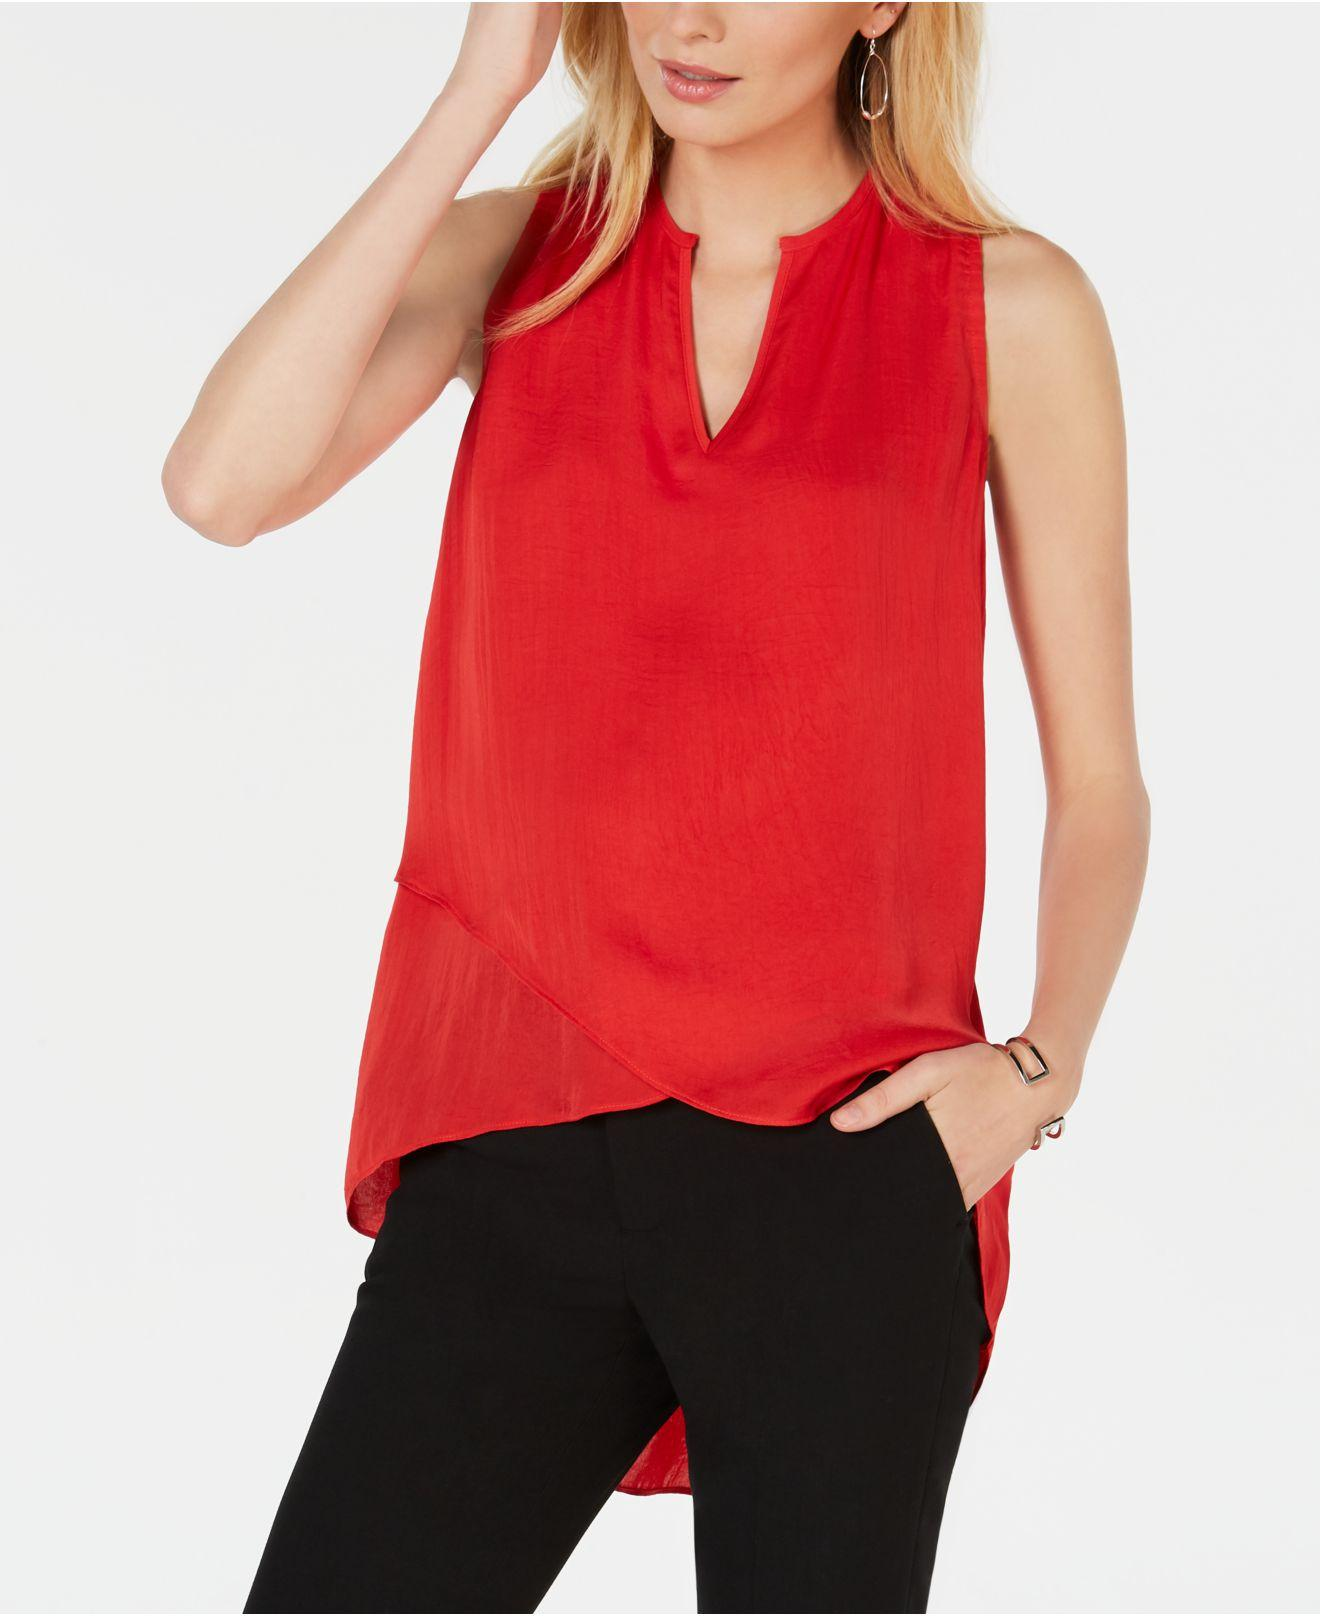 3a31beb5d Alfani. Women s Red High-low Crossover Top